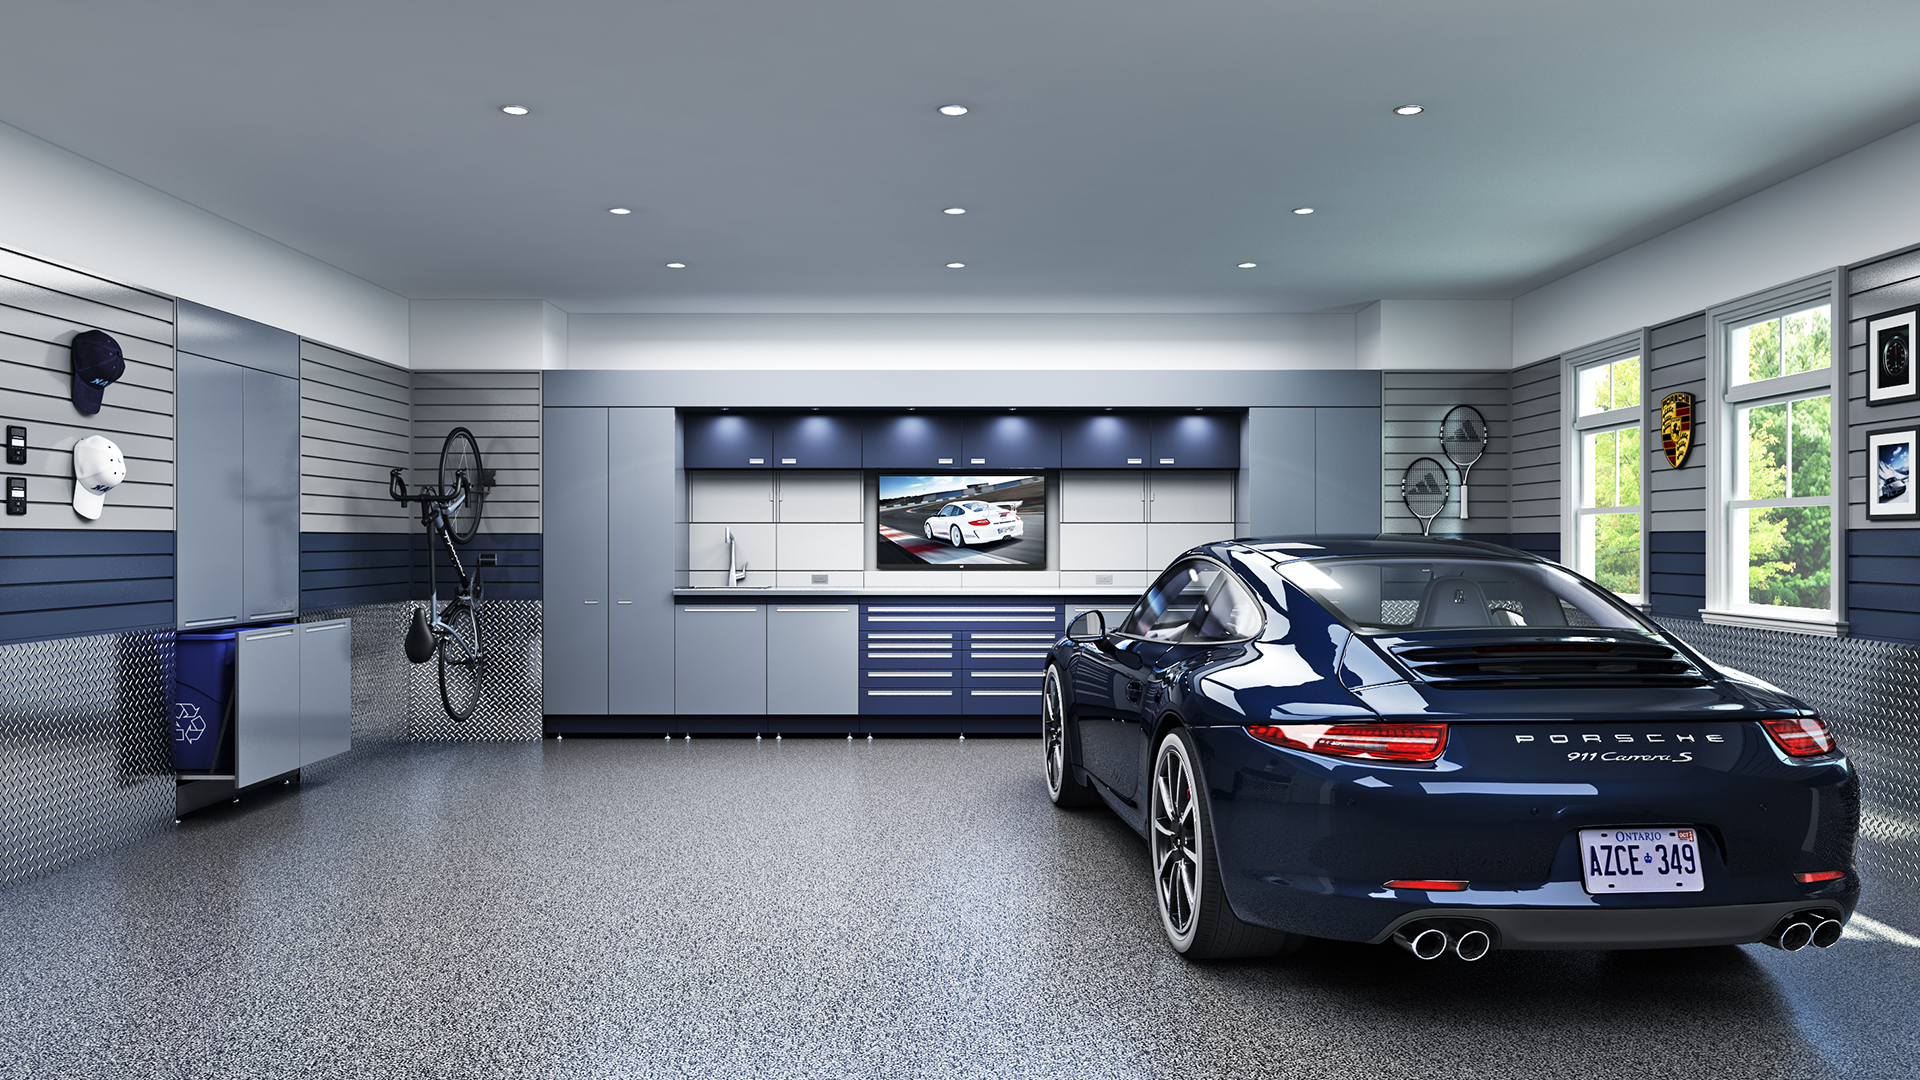 Garage with a Porsche 911 Carrera S. Virtual background to use on Zoom, Microsoft Teams, Skype, Google Meet, WebEx or any other compatible app.